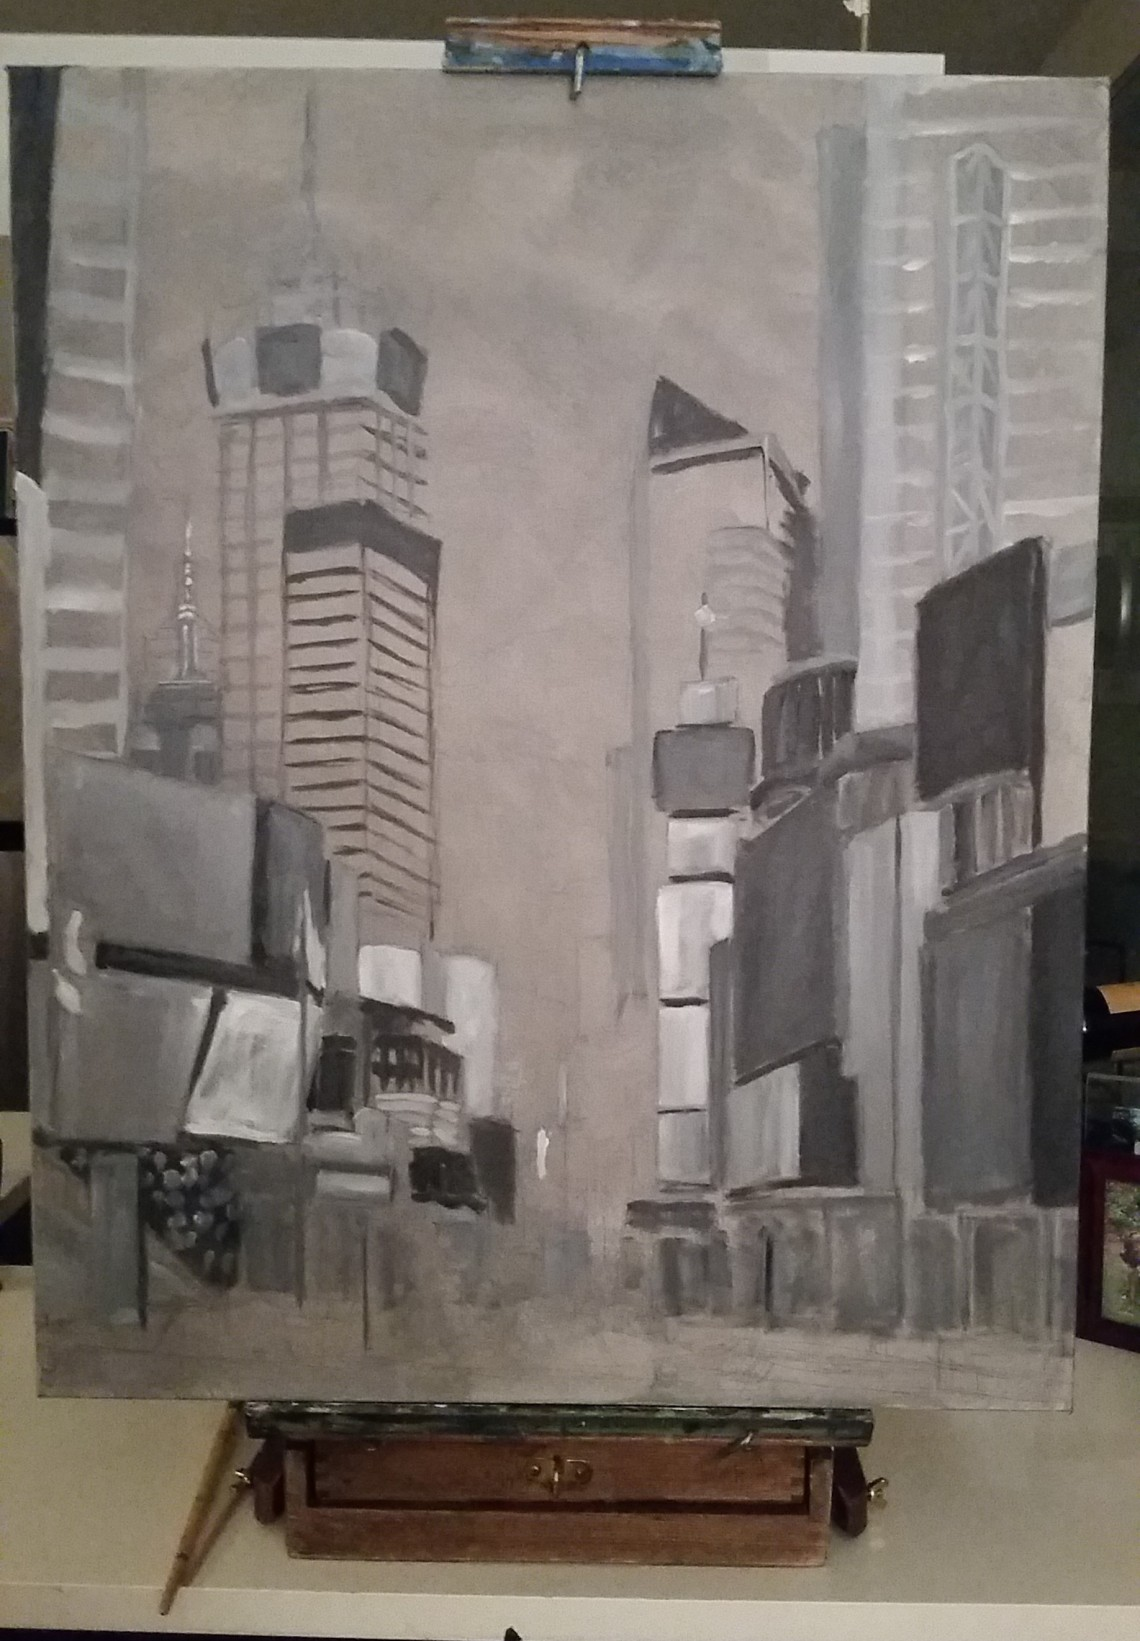 Times_sq_underpainting